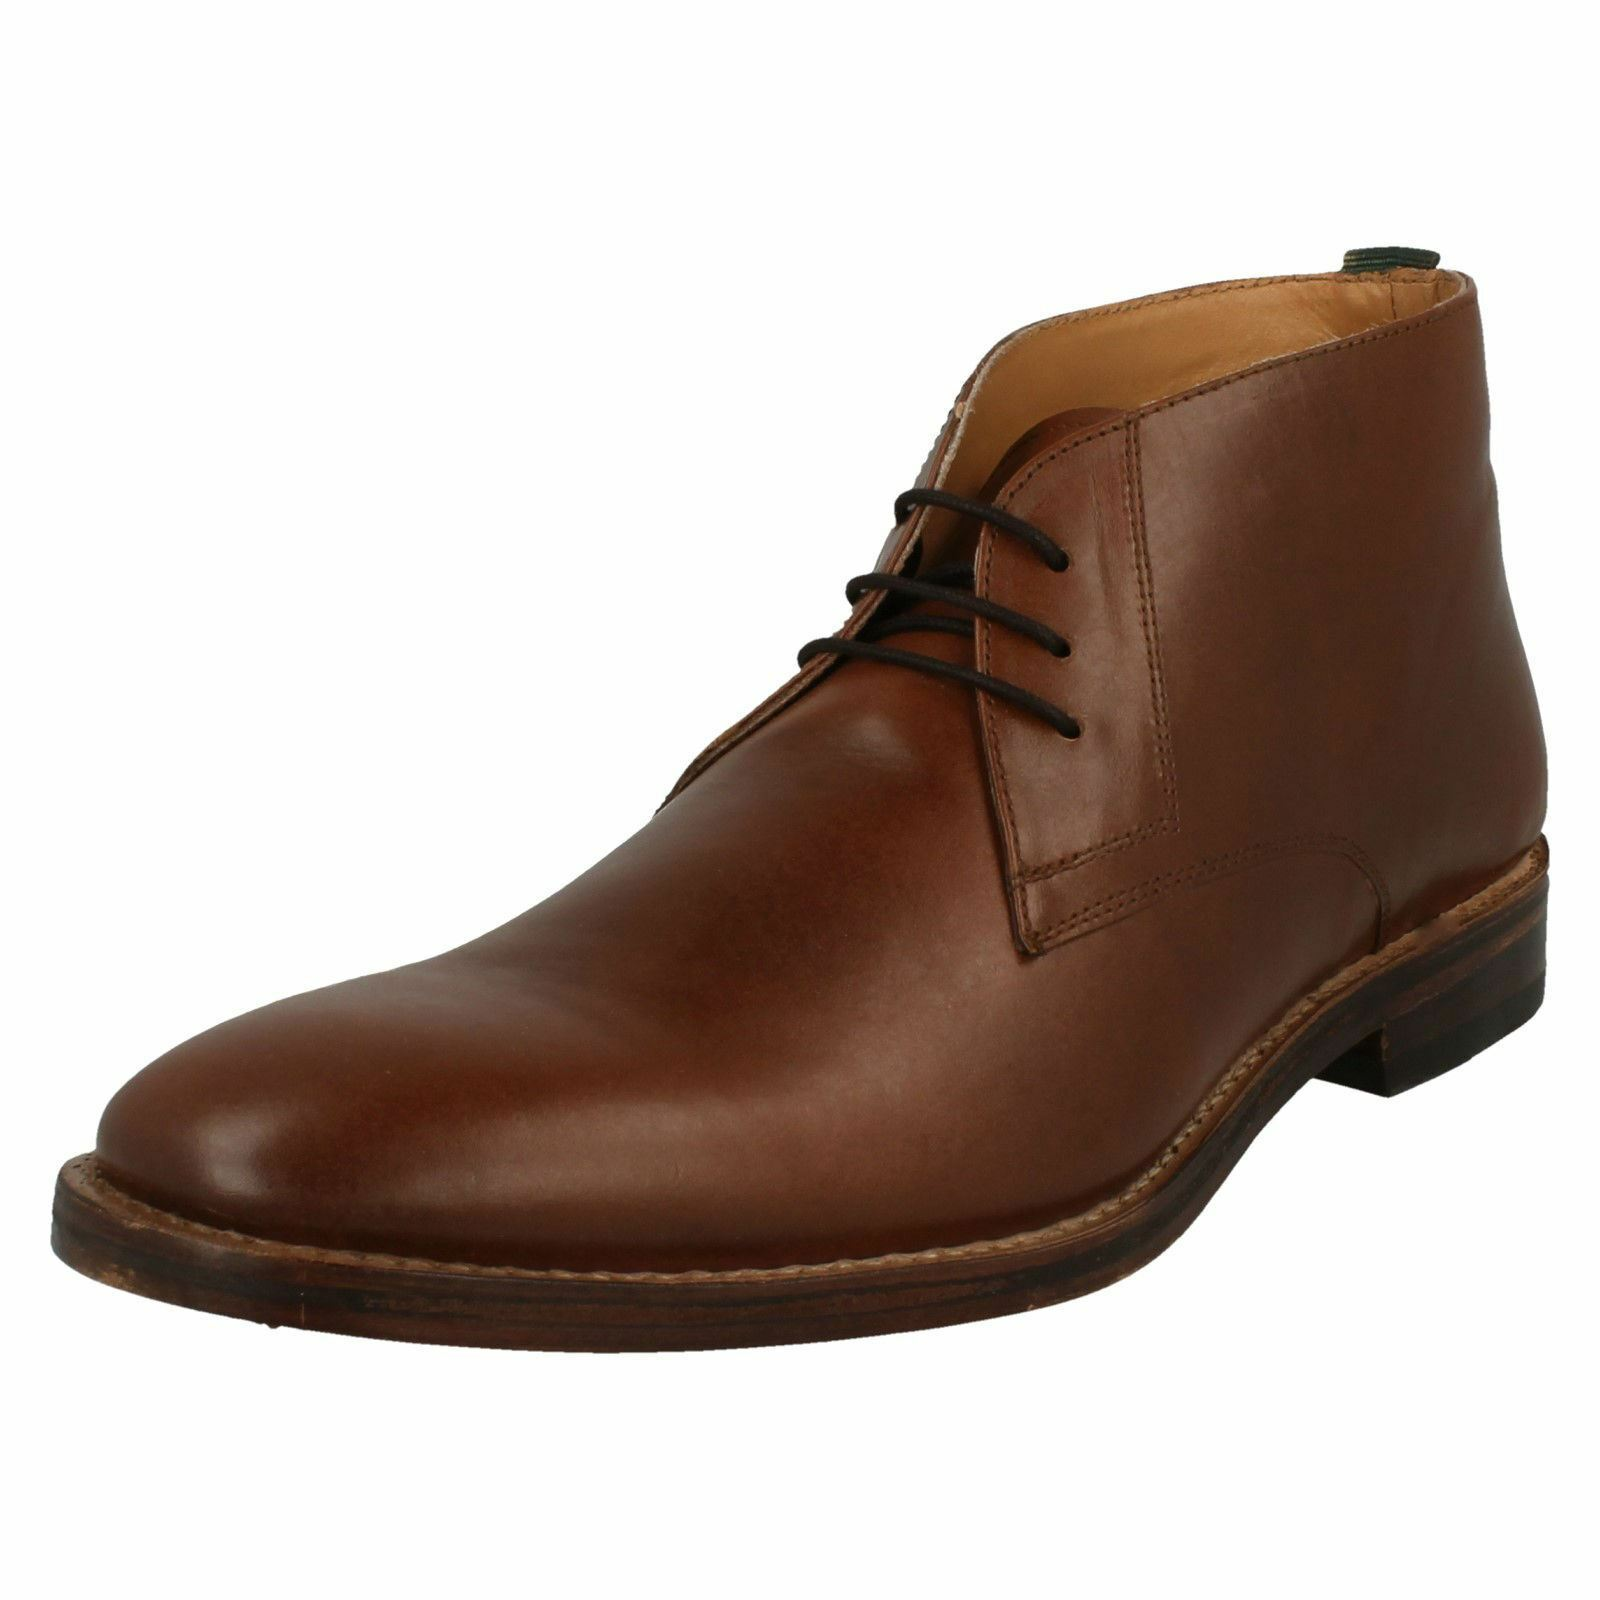 Uomo Catesby Leder Lace Up Fastening Smart Desert Stiefel - 'MRG50504C'